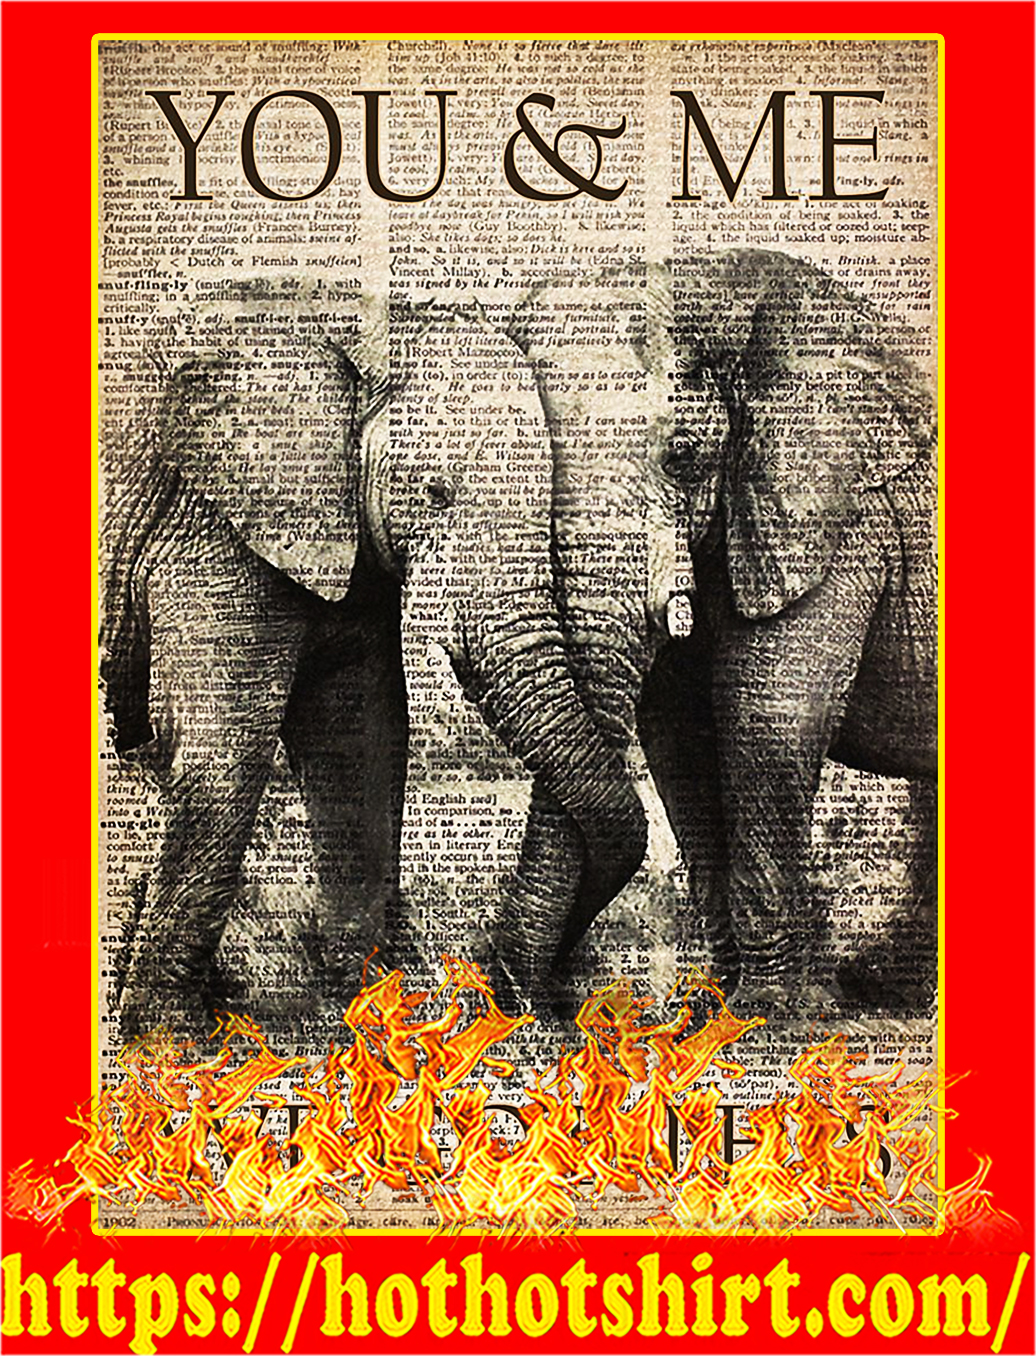 You and me we got this elephant poster - A3